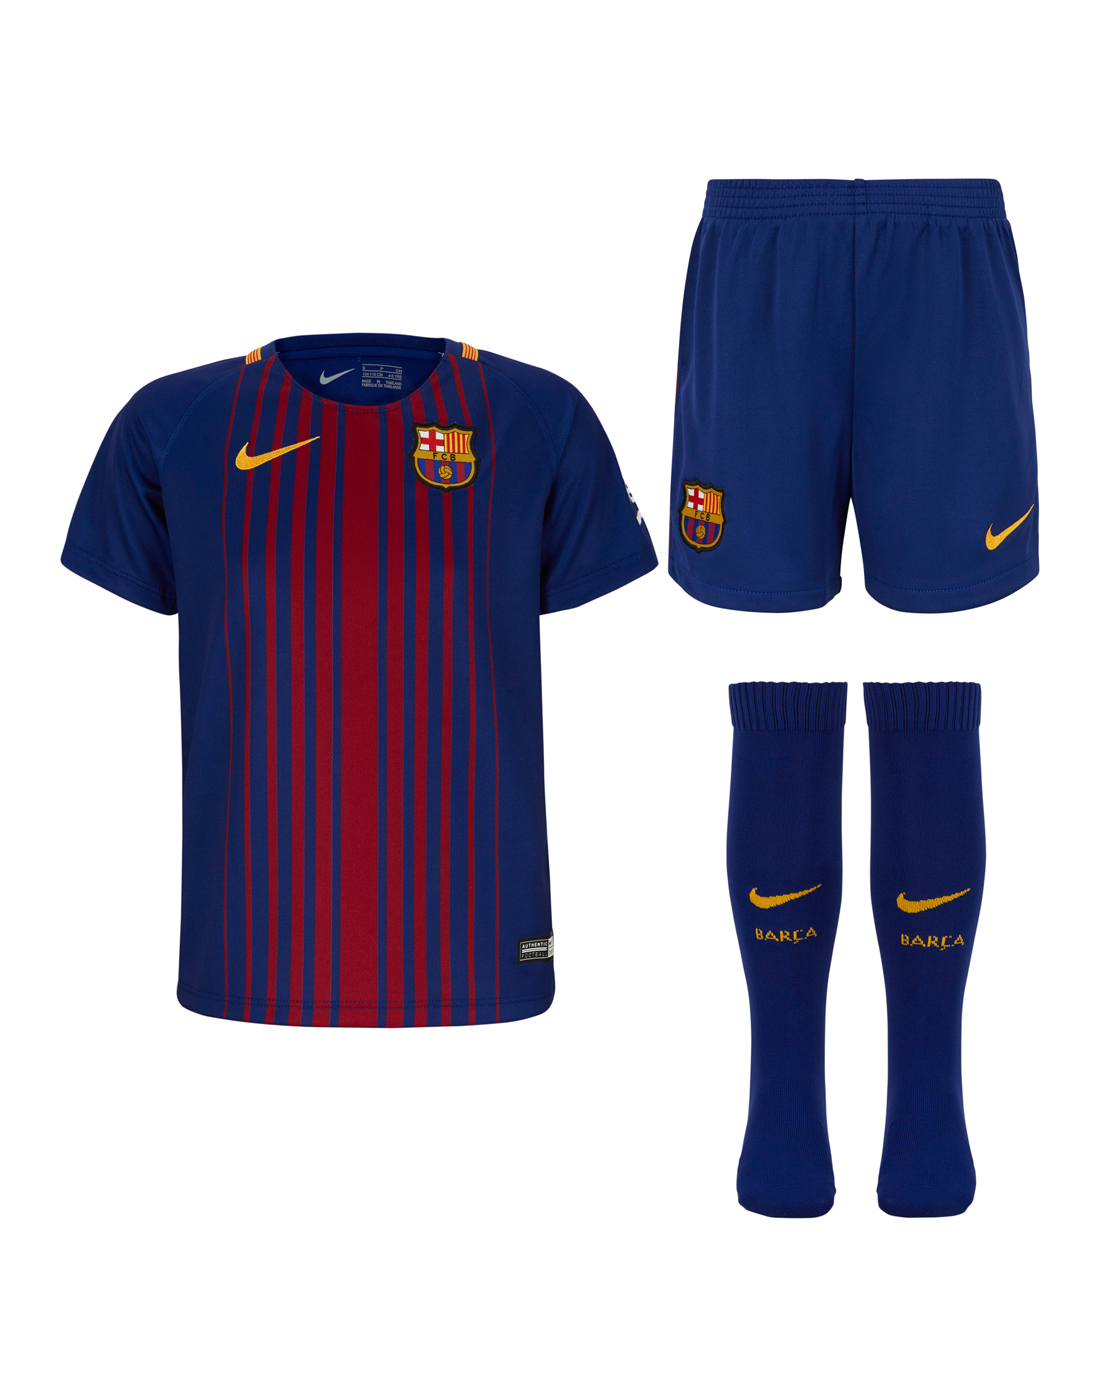 9f28902dc Nike Kids Barcelona 17 18 Home Kit